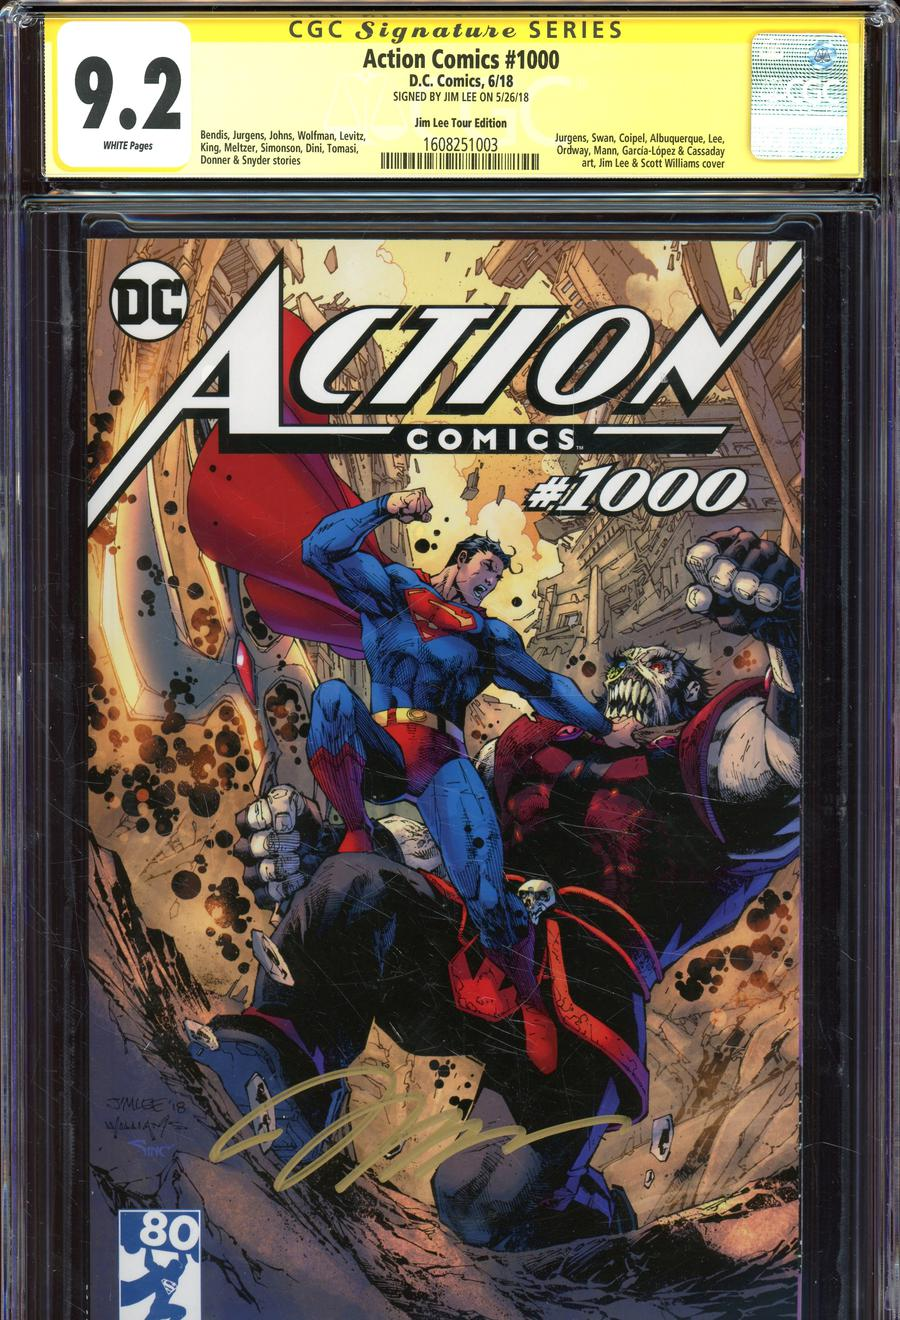 Action Comics Vol 2 #1000 Cover Z-Z Variant Jim Lee Tour Cover Signed By Jim Lee CGC 9.2